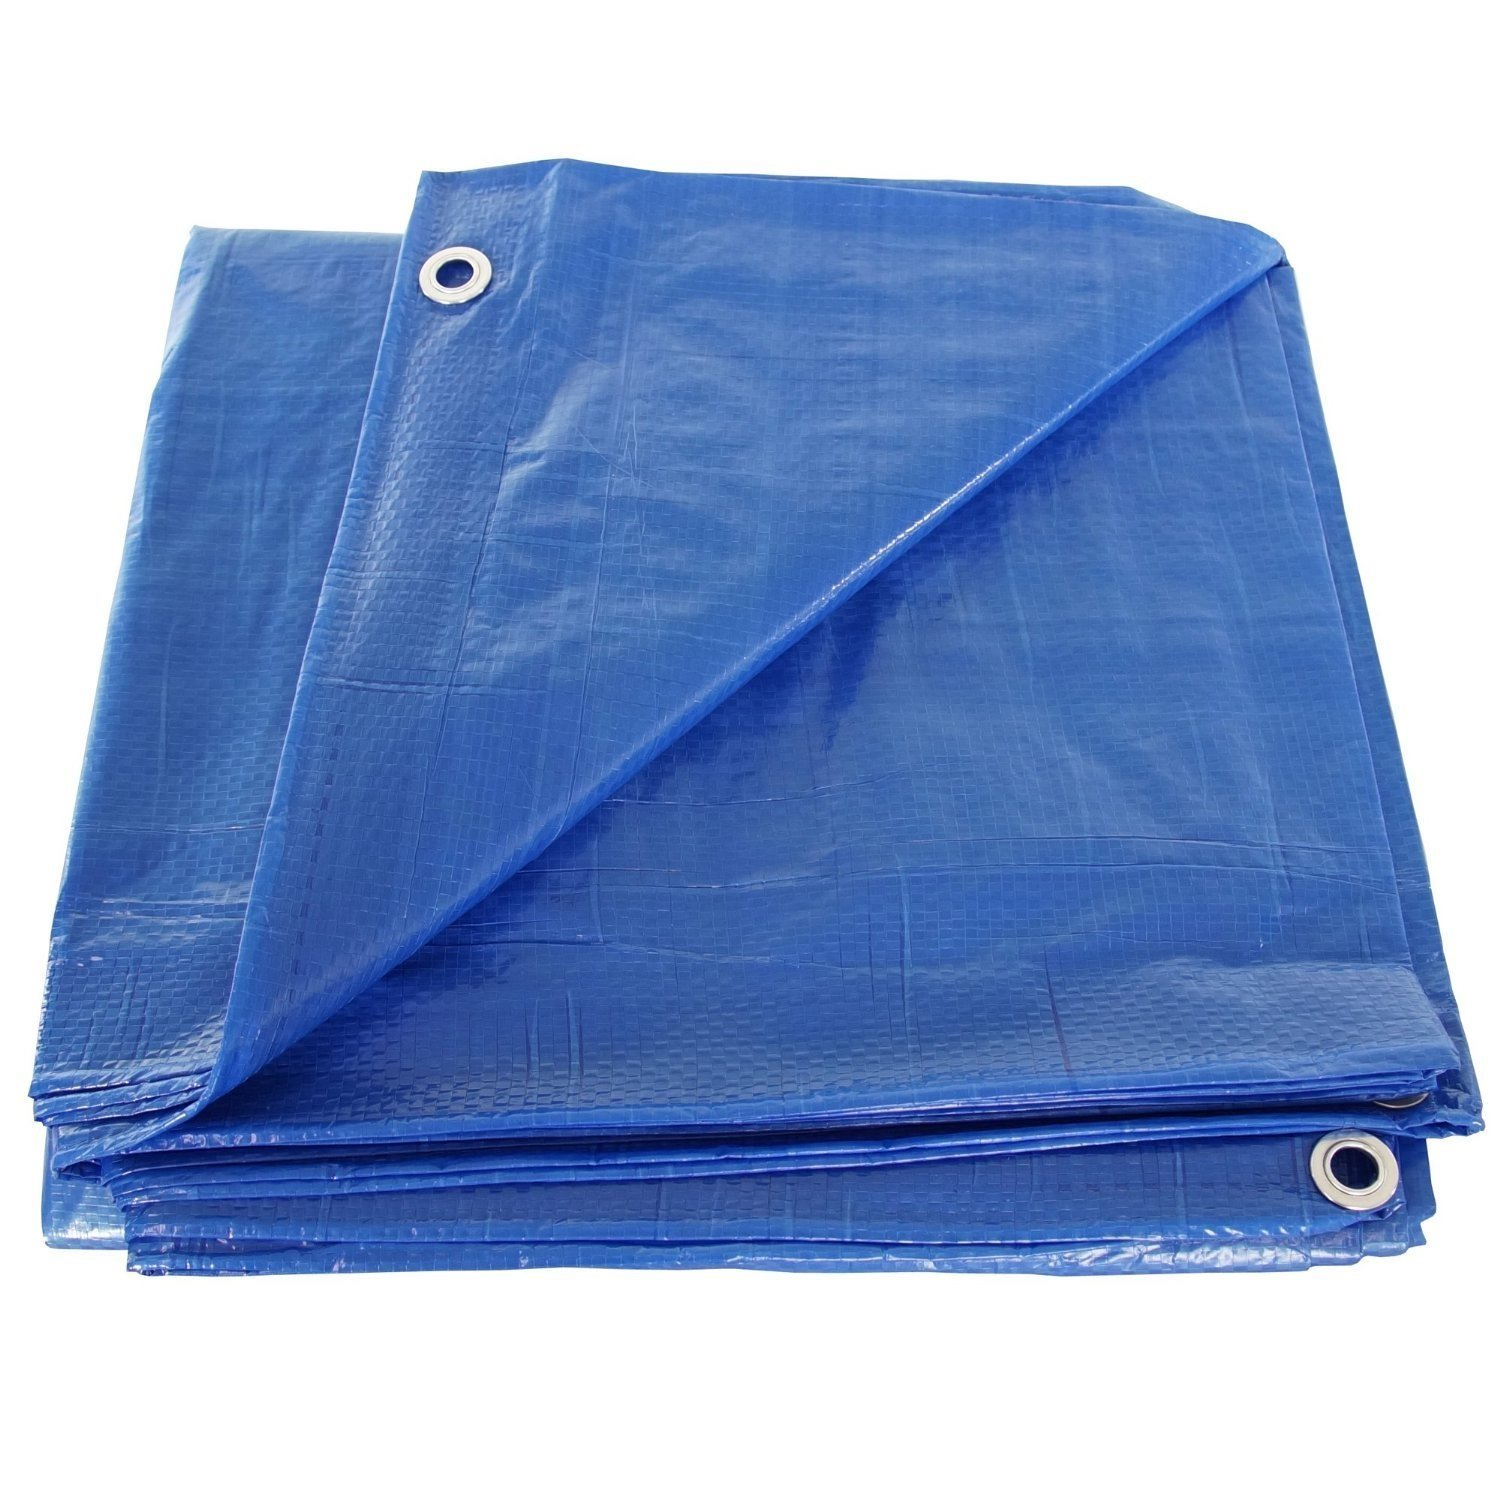 12' x 22' Blue Poly Tarp Cover, Water Proof Tent Shelter Camping RV Boat Tarpaulin